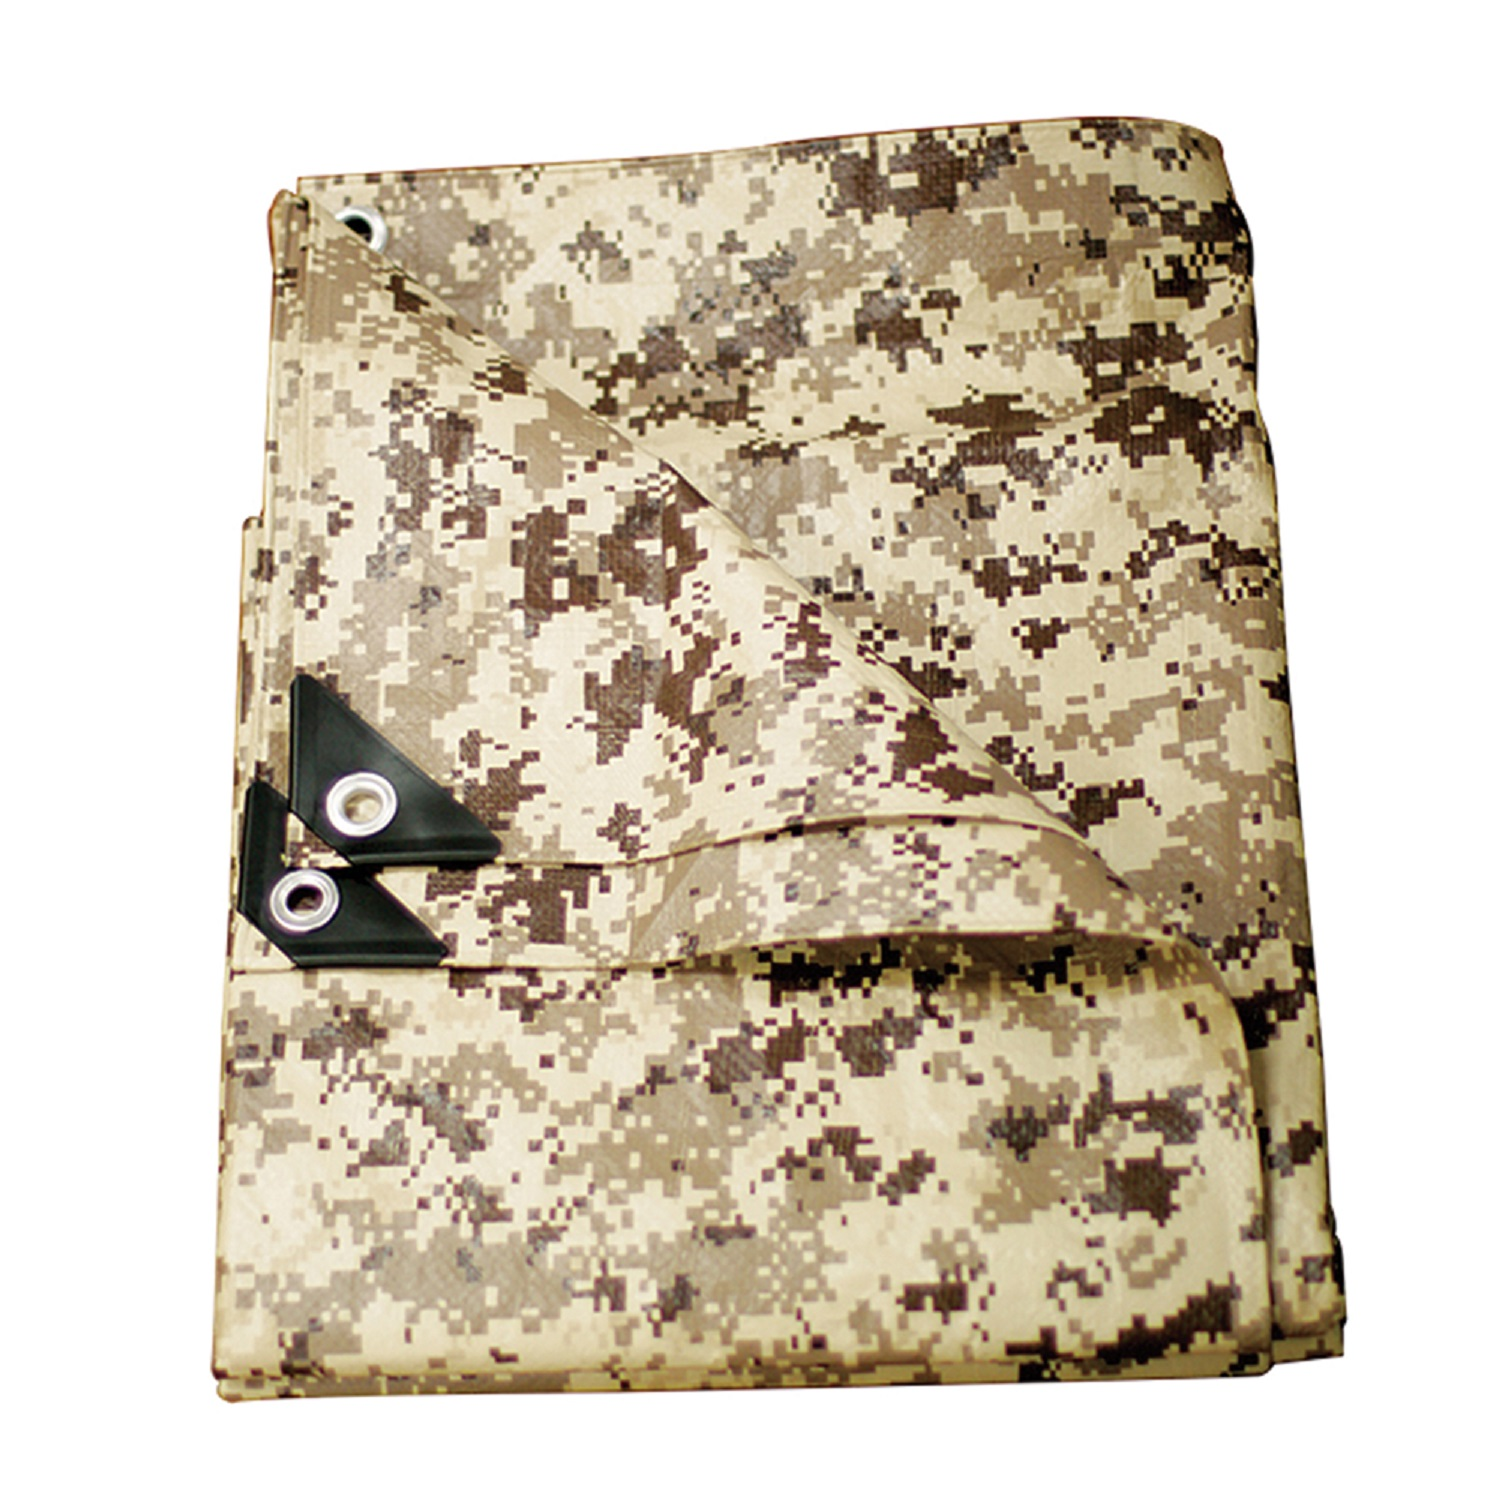 Stansport 8ft x 10ft Digital Camo Tarp - Desert